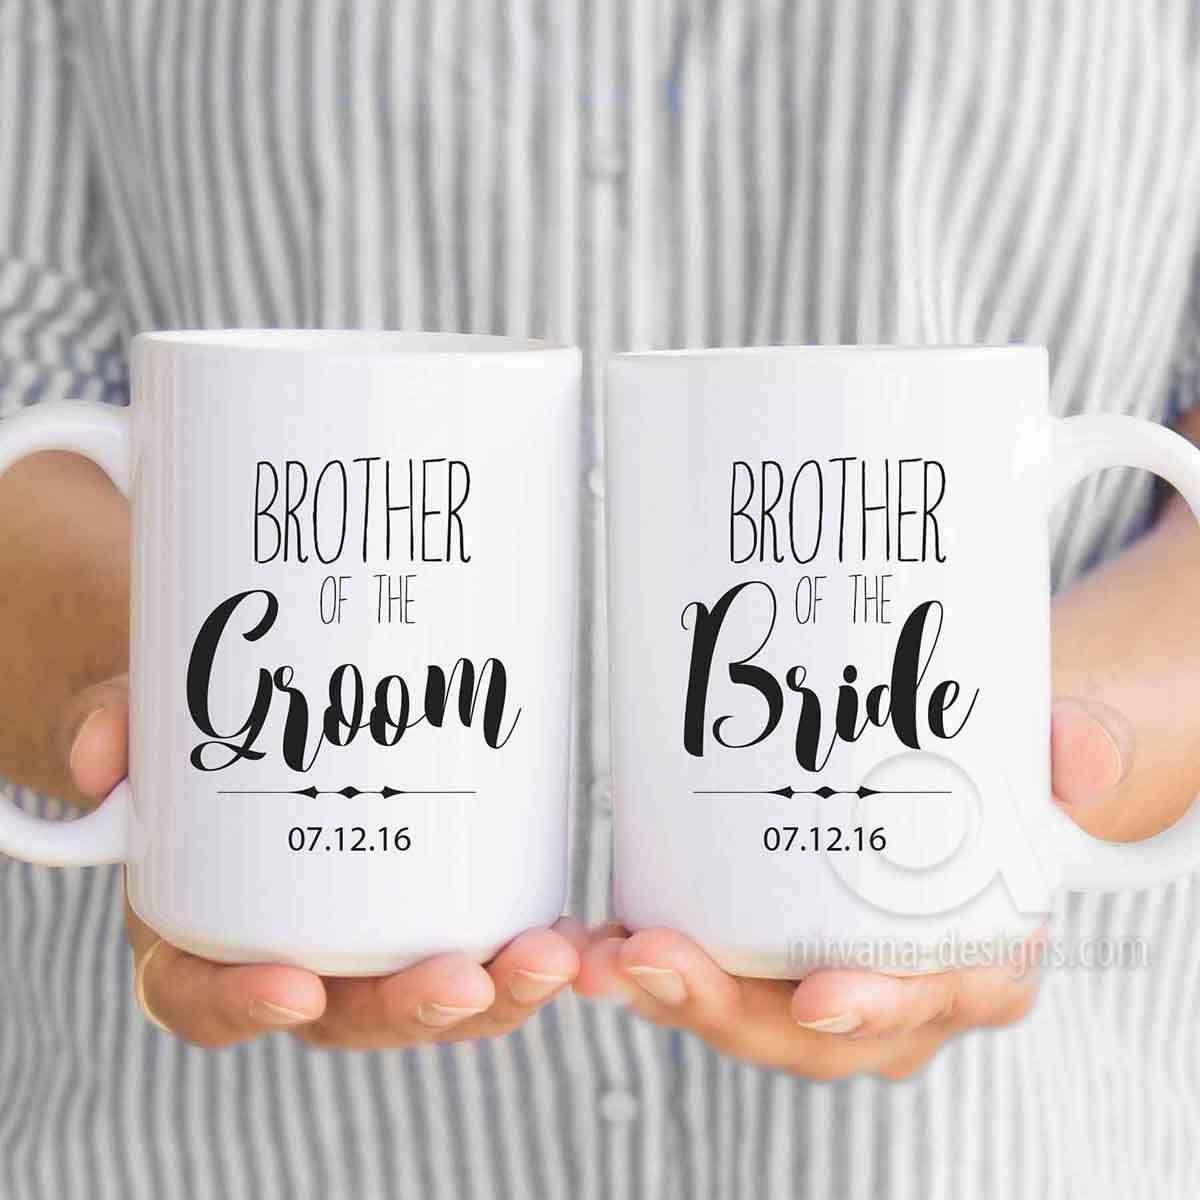 Brother Of The Groom Gift Personalized Mugs Brother Of The Bride Gifts Wedding Gifts Fo 6th Anniversary Gifts Mens Anniversary Gifts Second Anniversary Gift